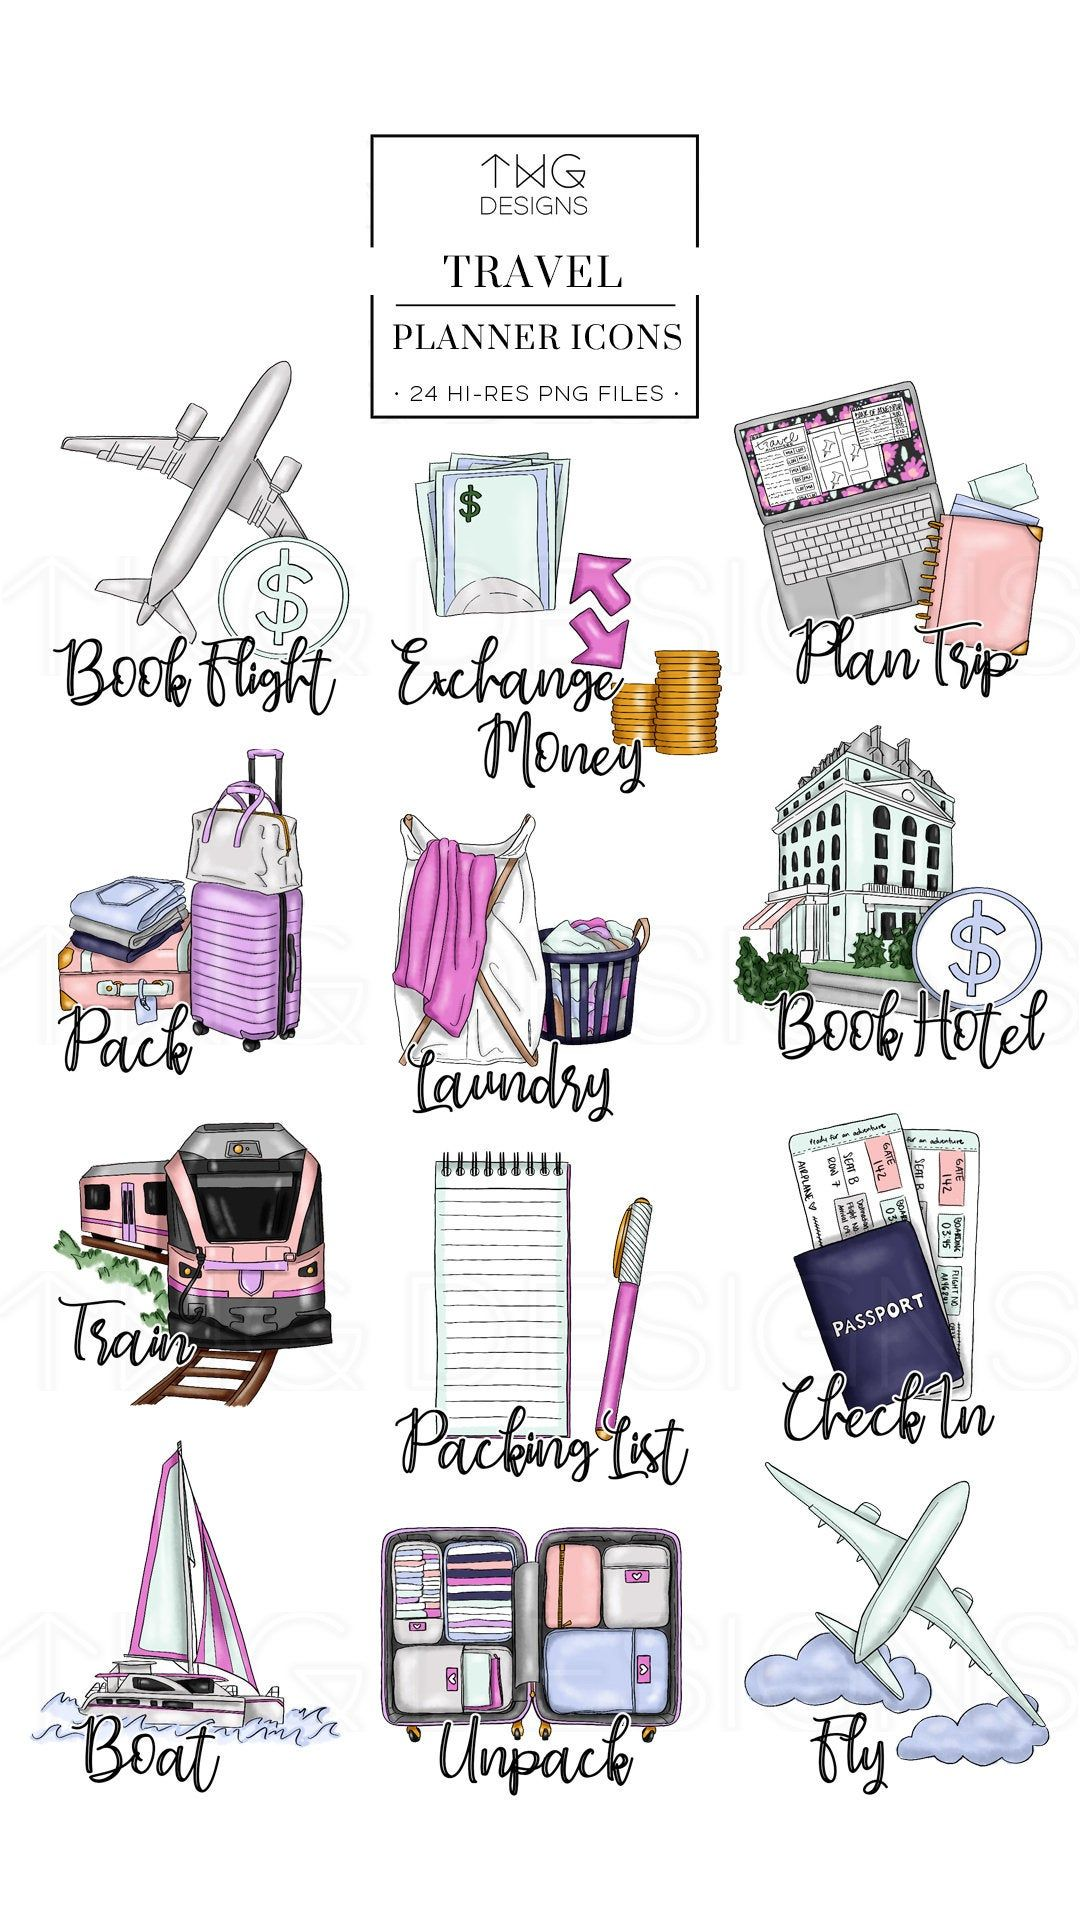 Watercolor laundry linen clipart jpg library stock Travel Planner Icons Clip Art Clipart Watercolor Hand Drawn ... jpg library stock